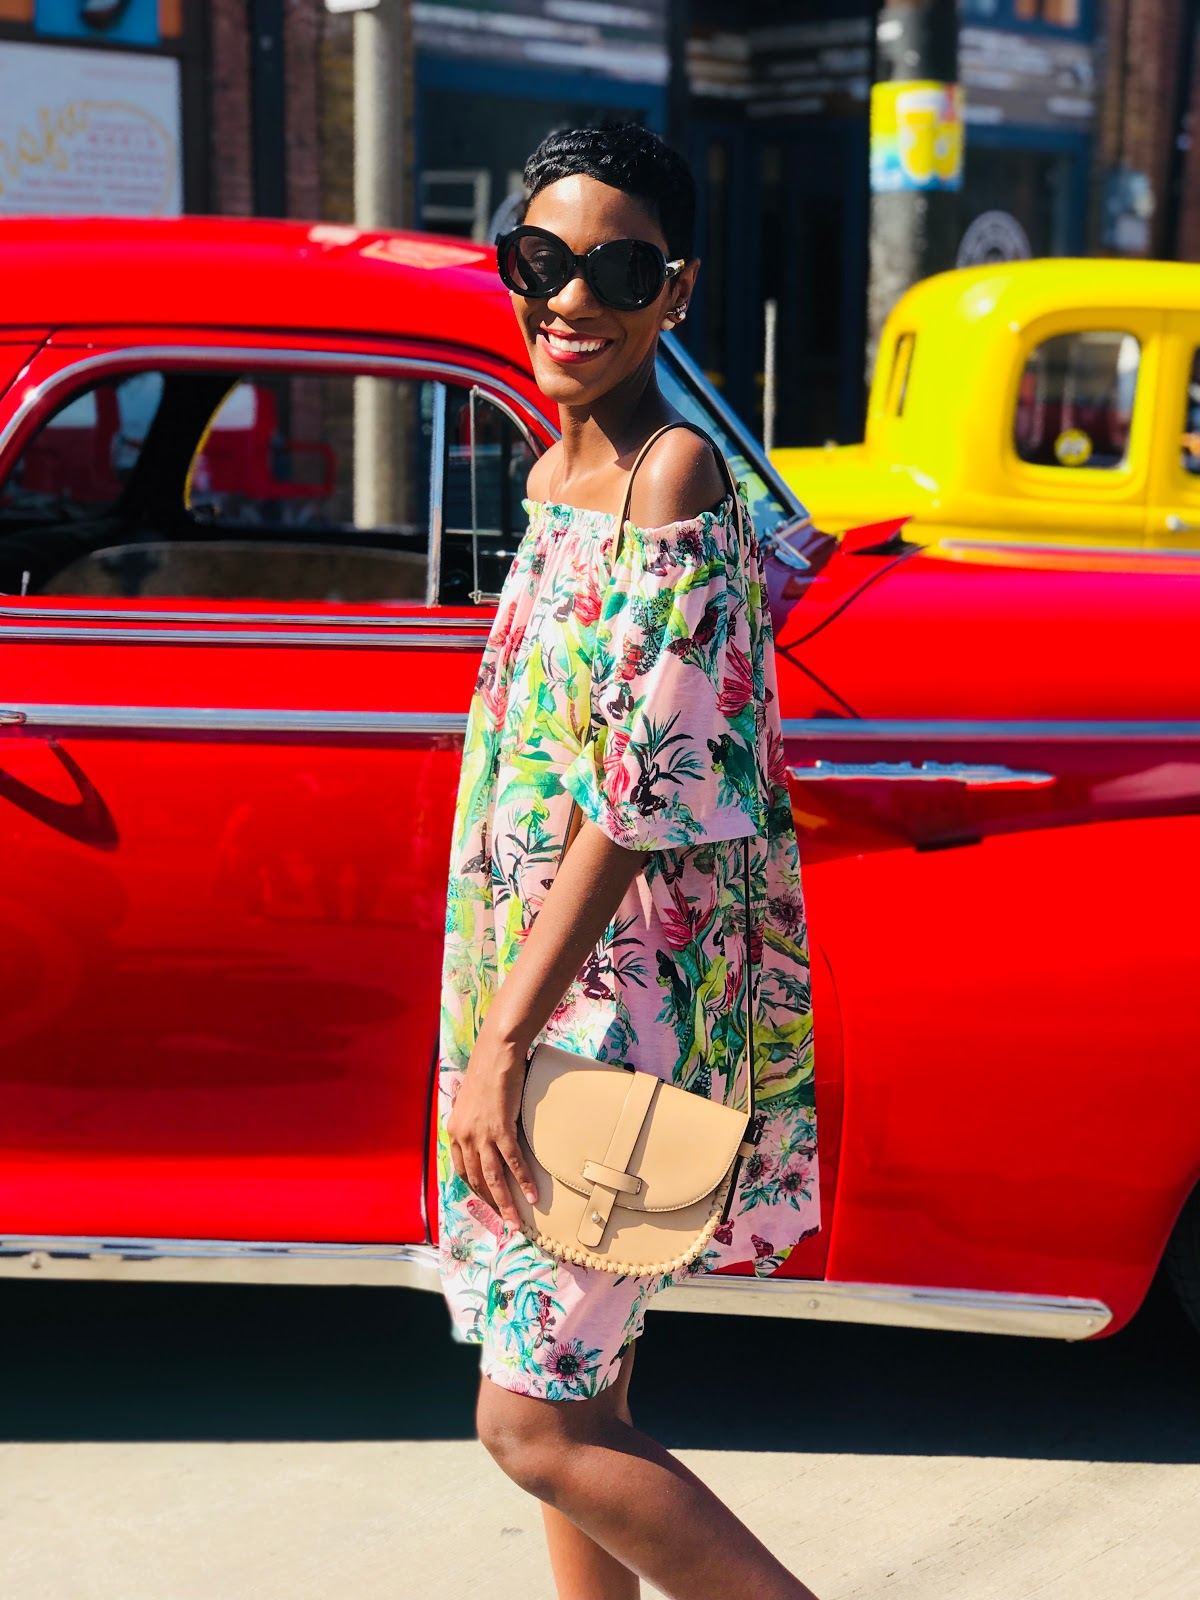 Happy Diaries: Weekend Car Shows + Spending Time With Family + A Fresh New Attitude!